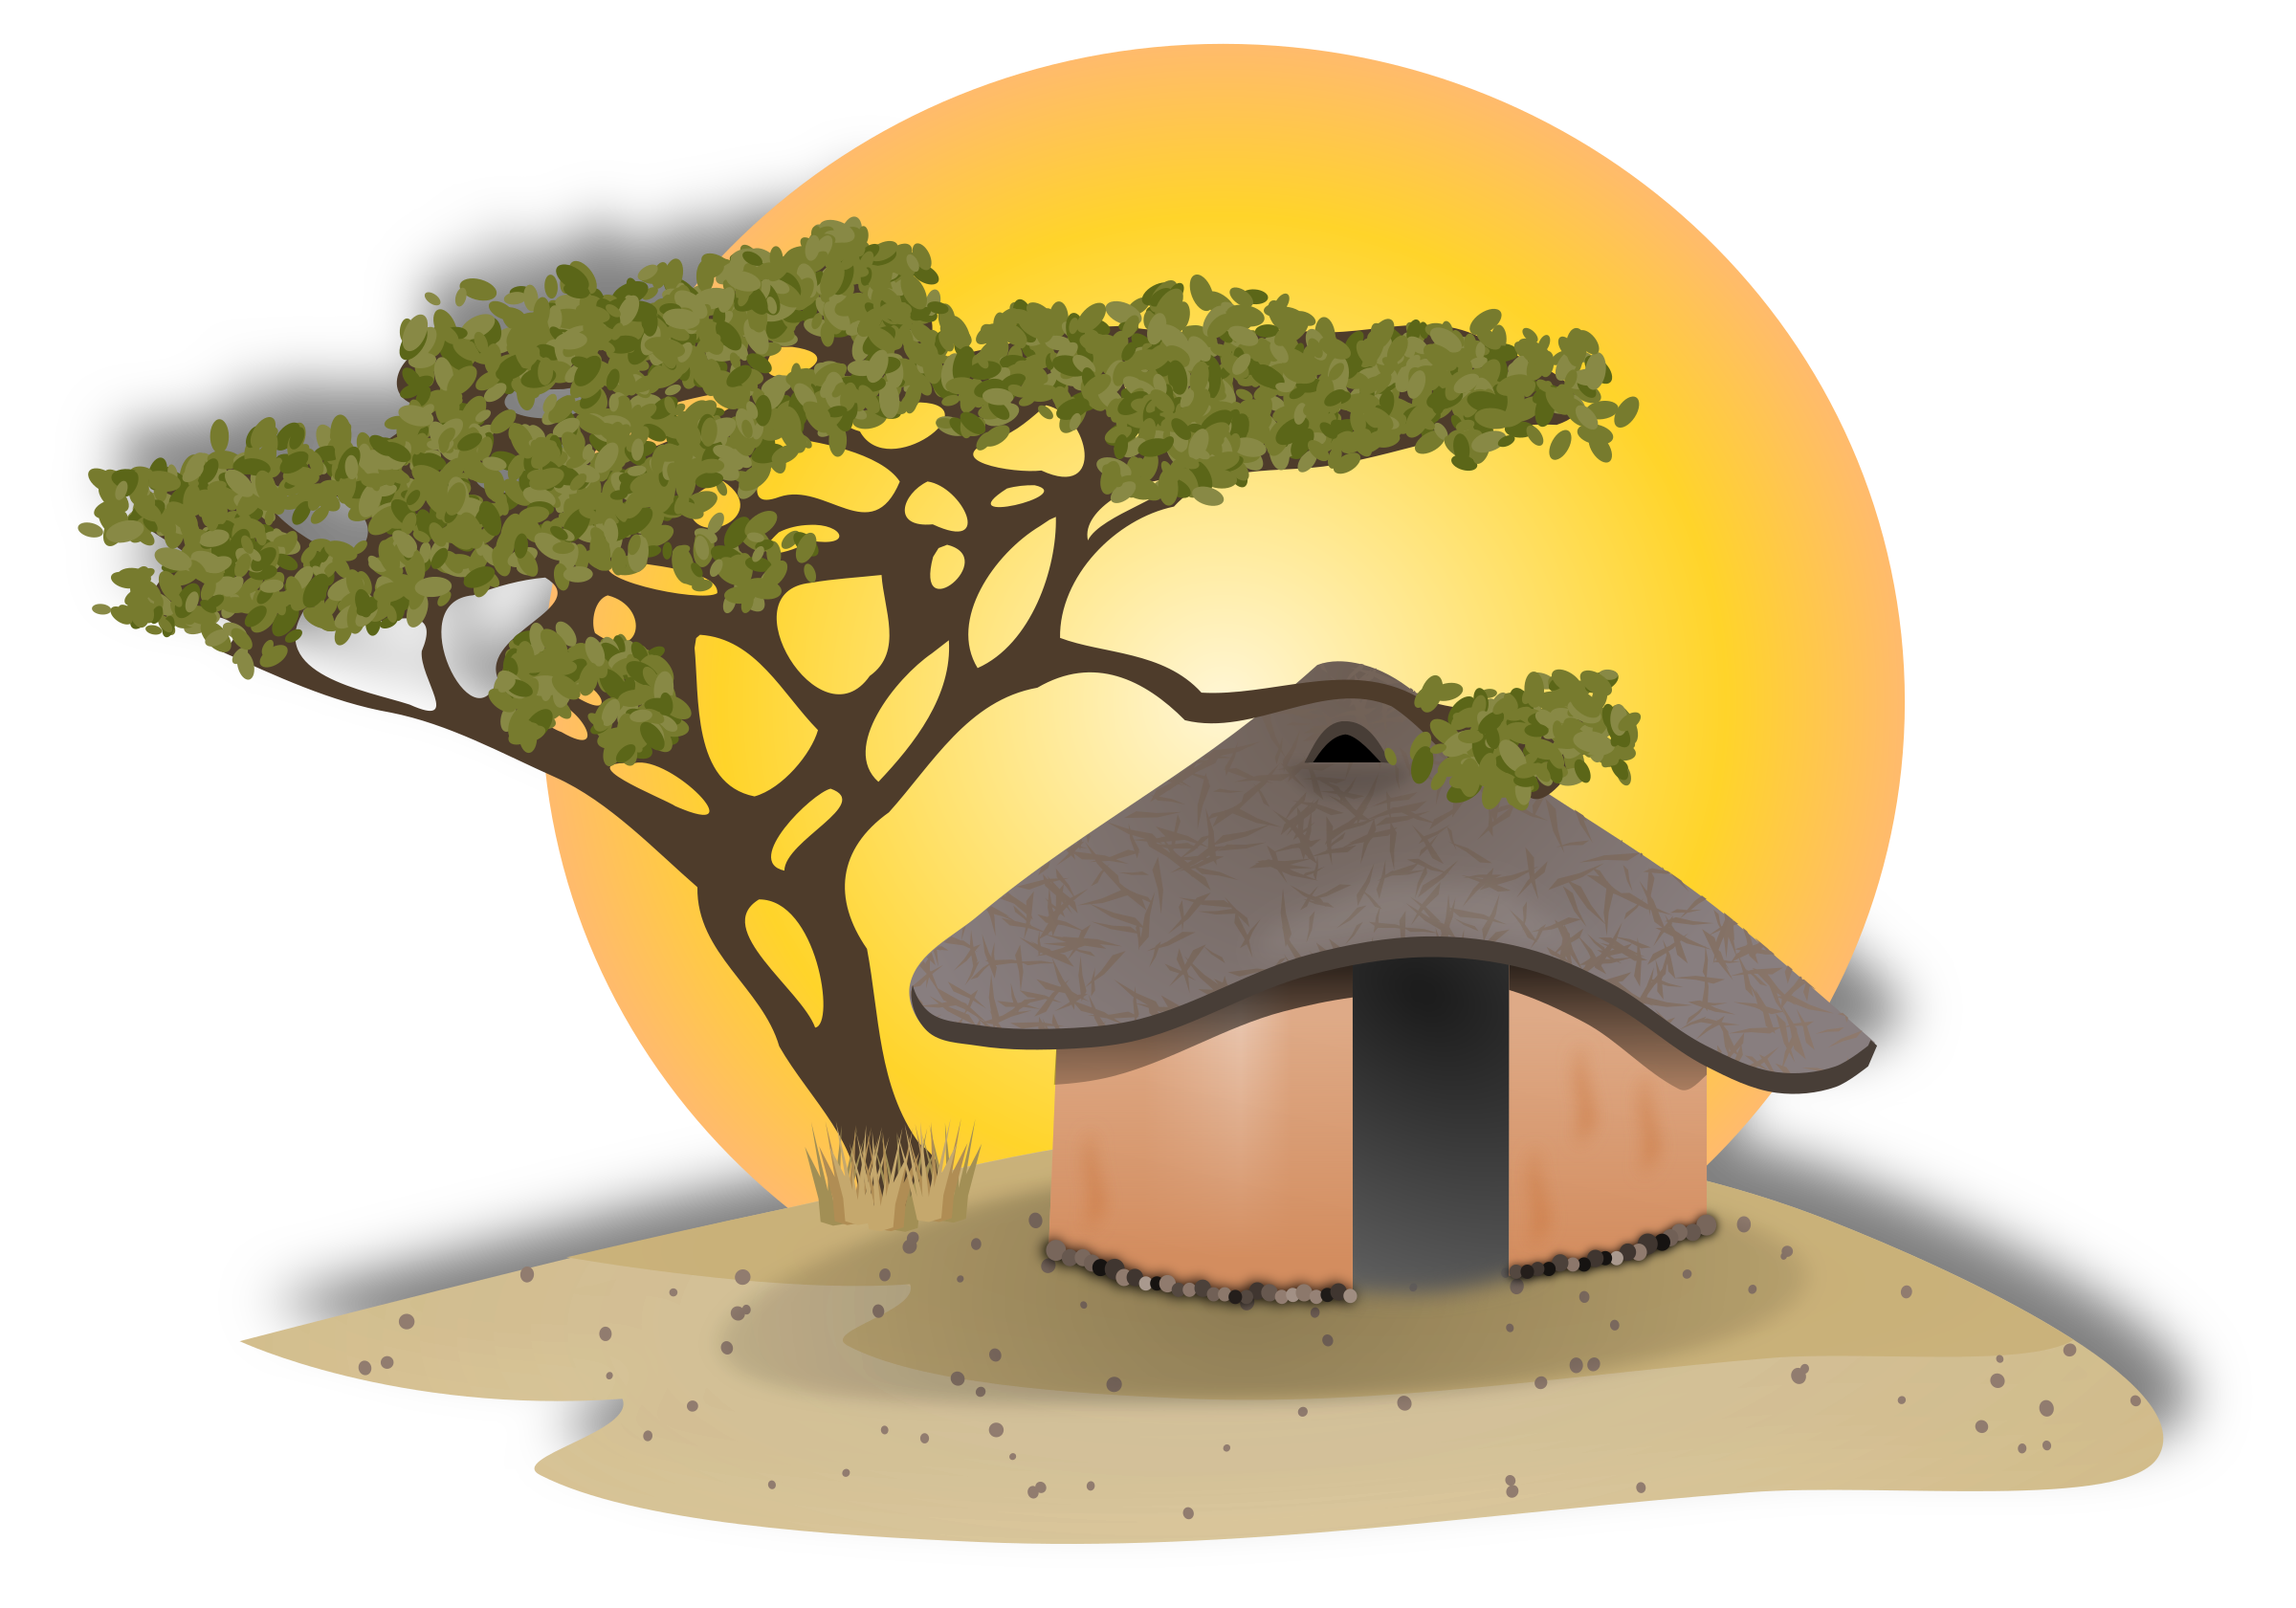 Village house clipart graphic library library Clipart - African Hut graphic library library